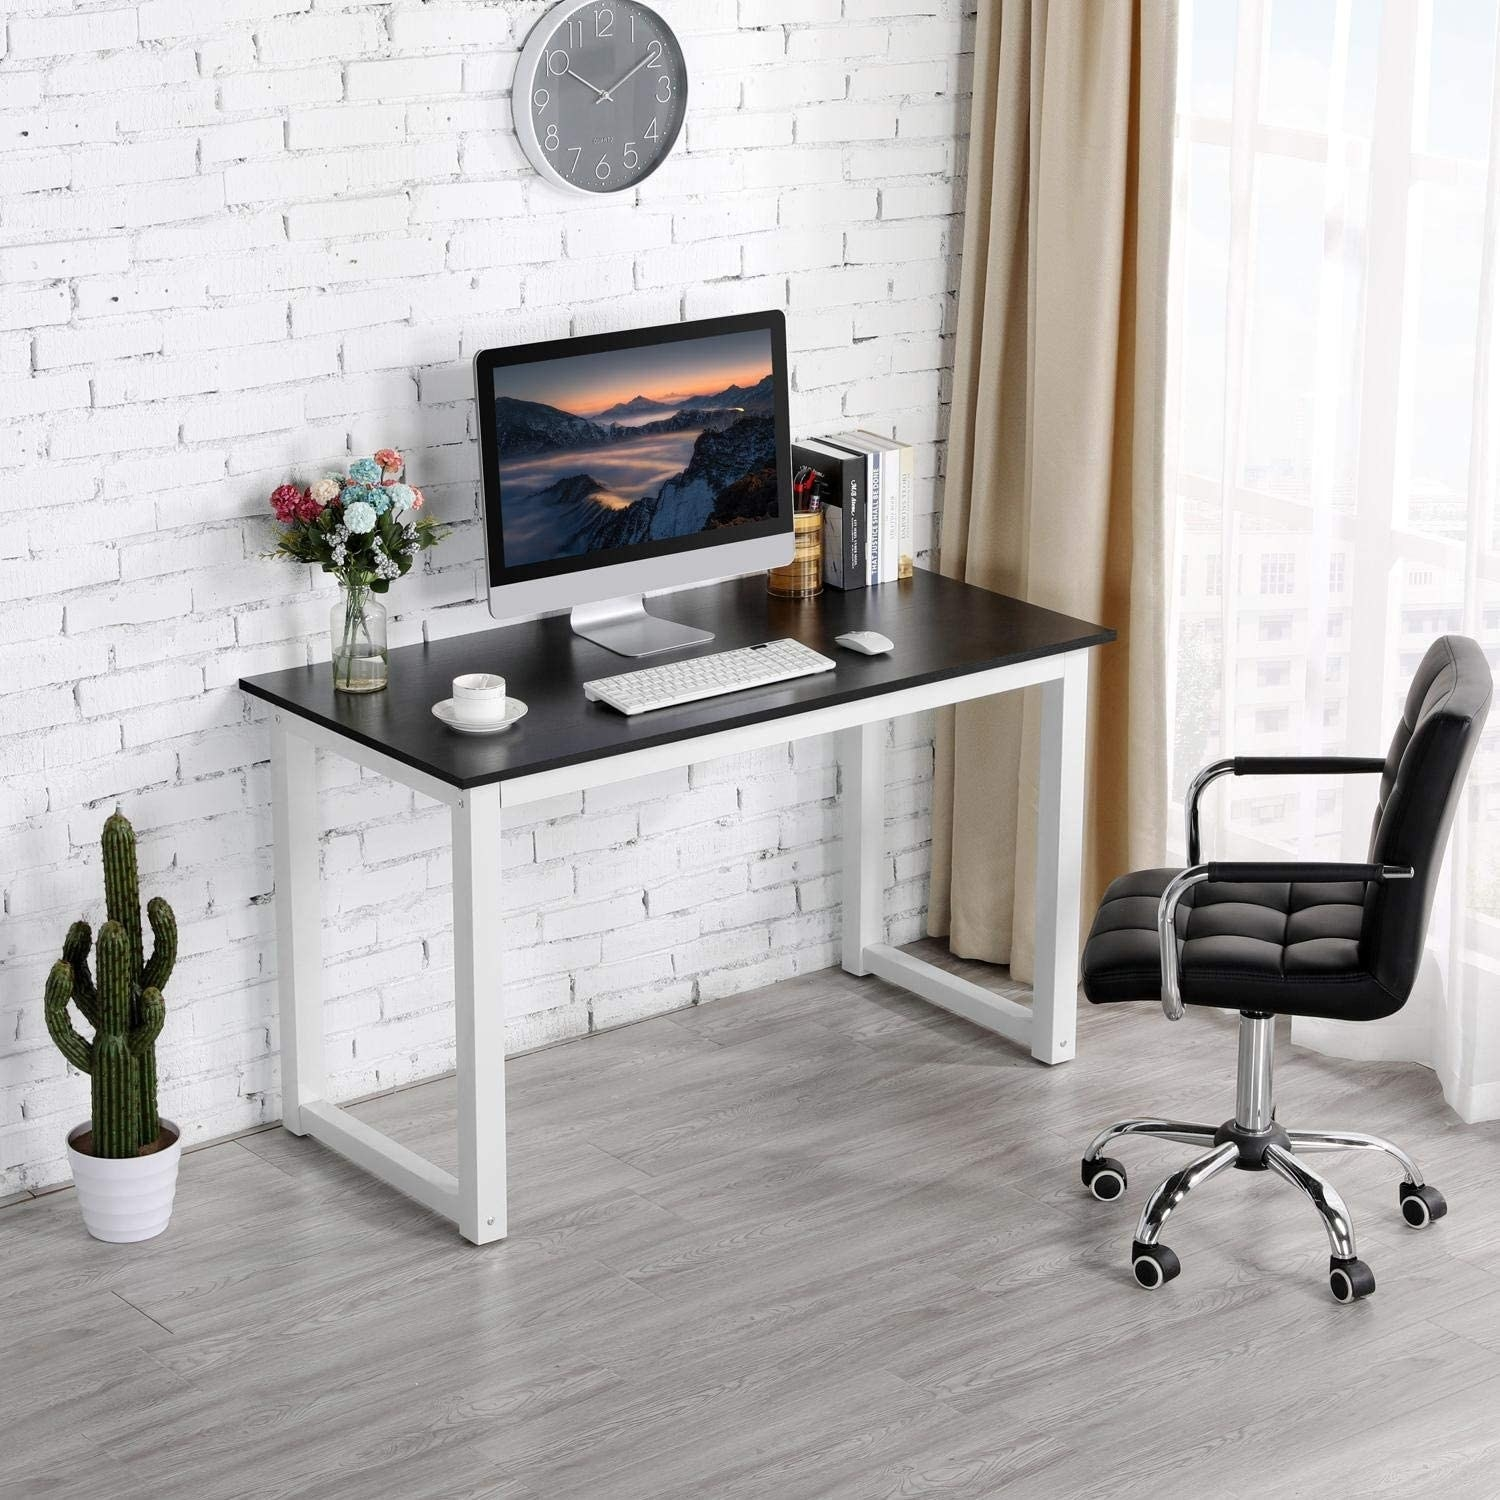 Black-top desk with white thick legs